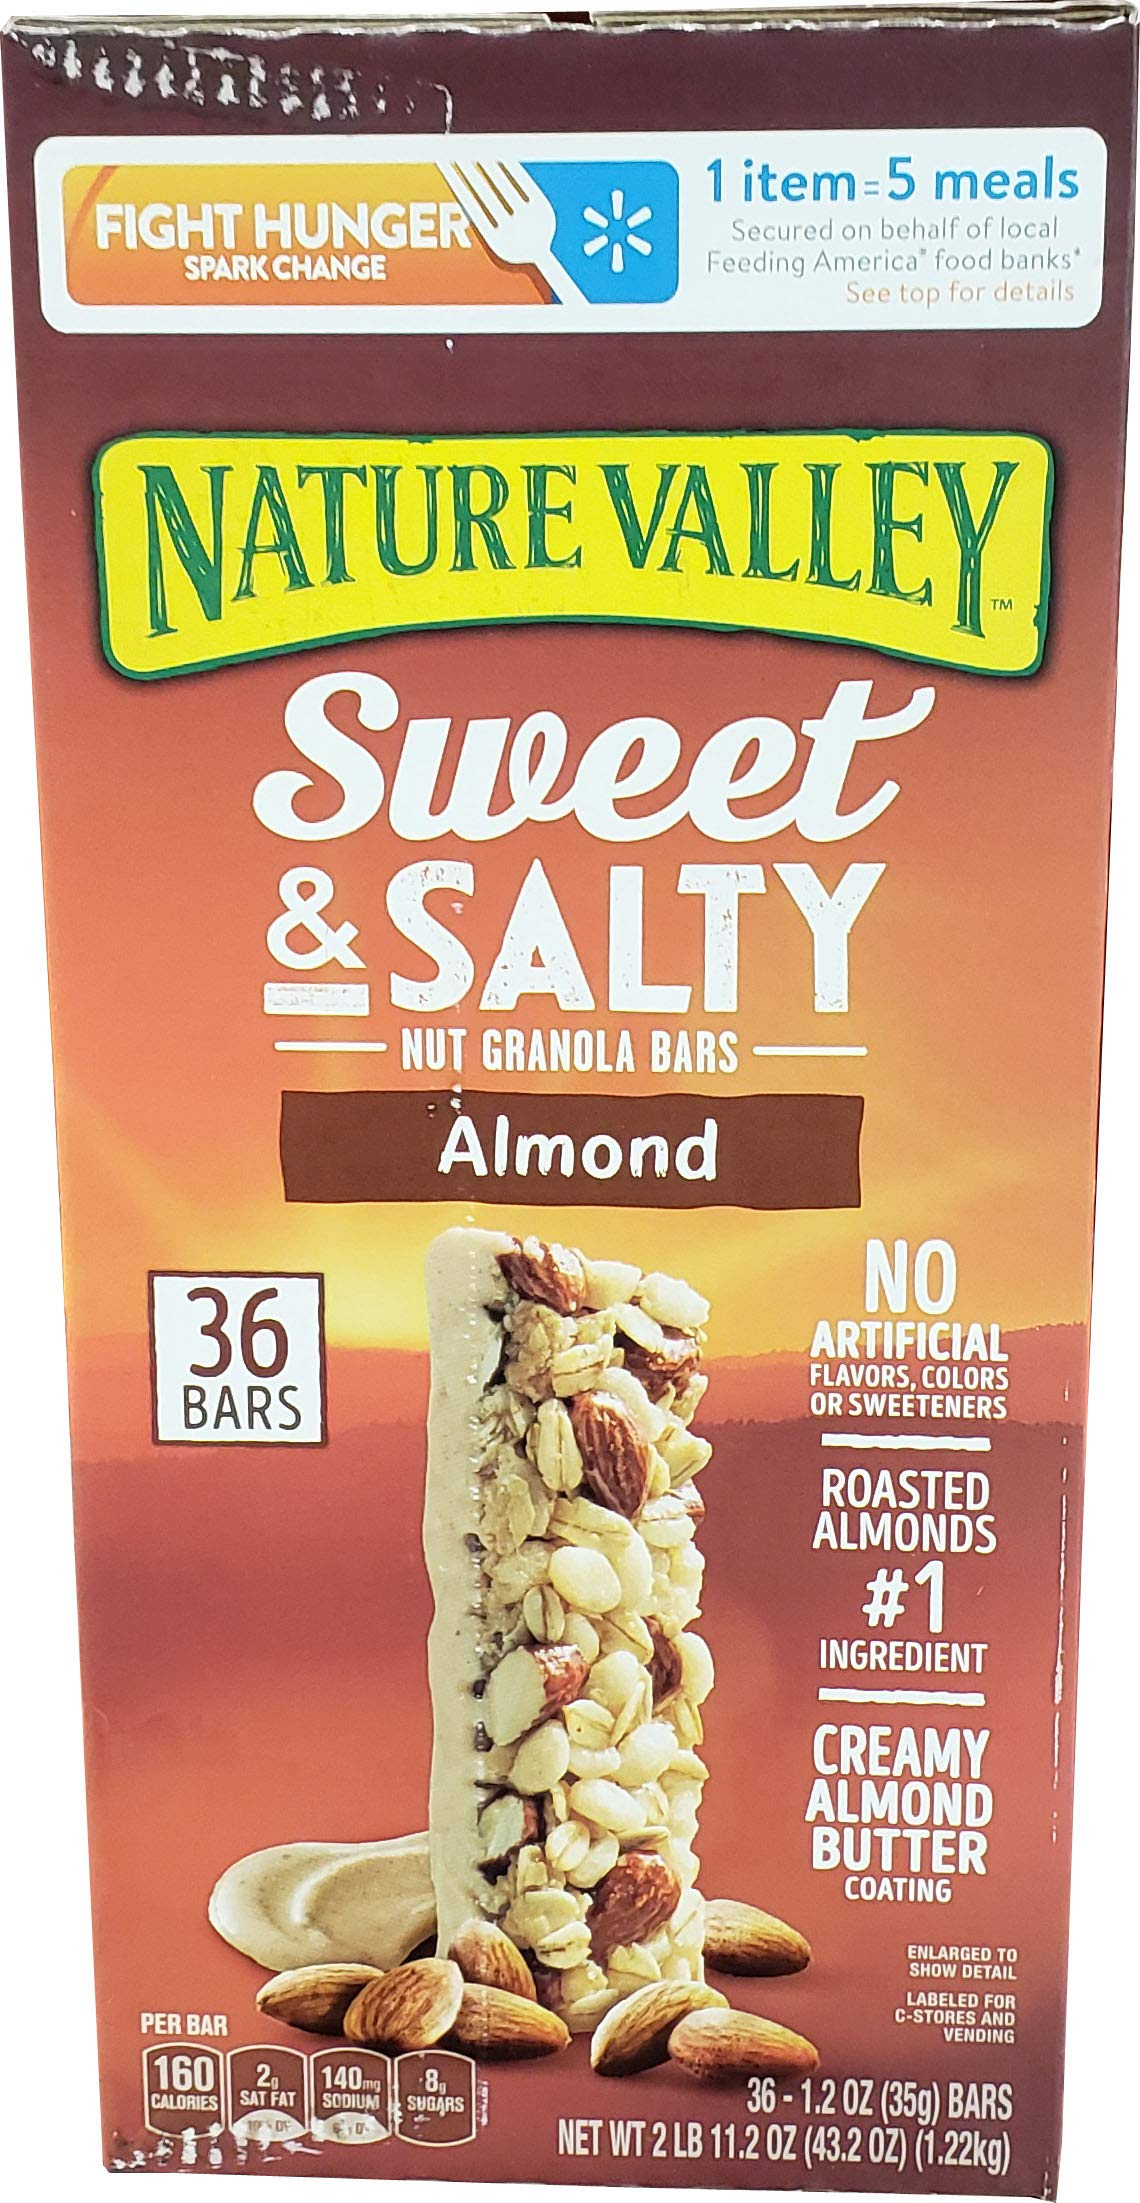 Nature Valley Nature Valley Sweet & Salty Almond Bars 36 x 1.2 Oz Net Wt 43.2 Oz, 43.2 oz by Nature Valley